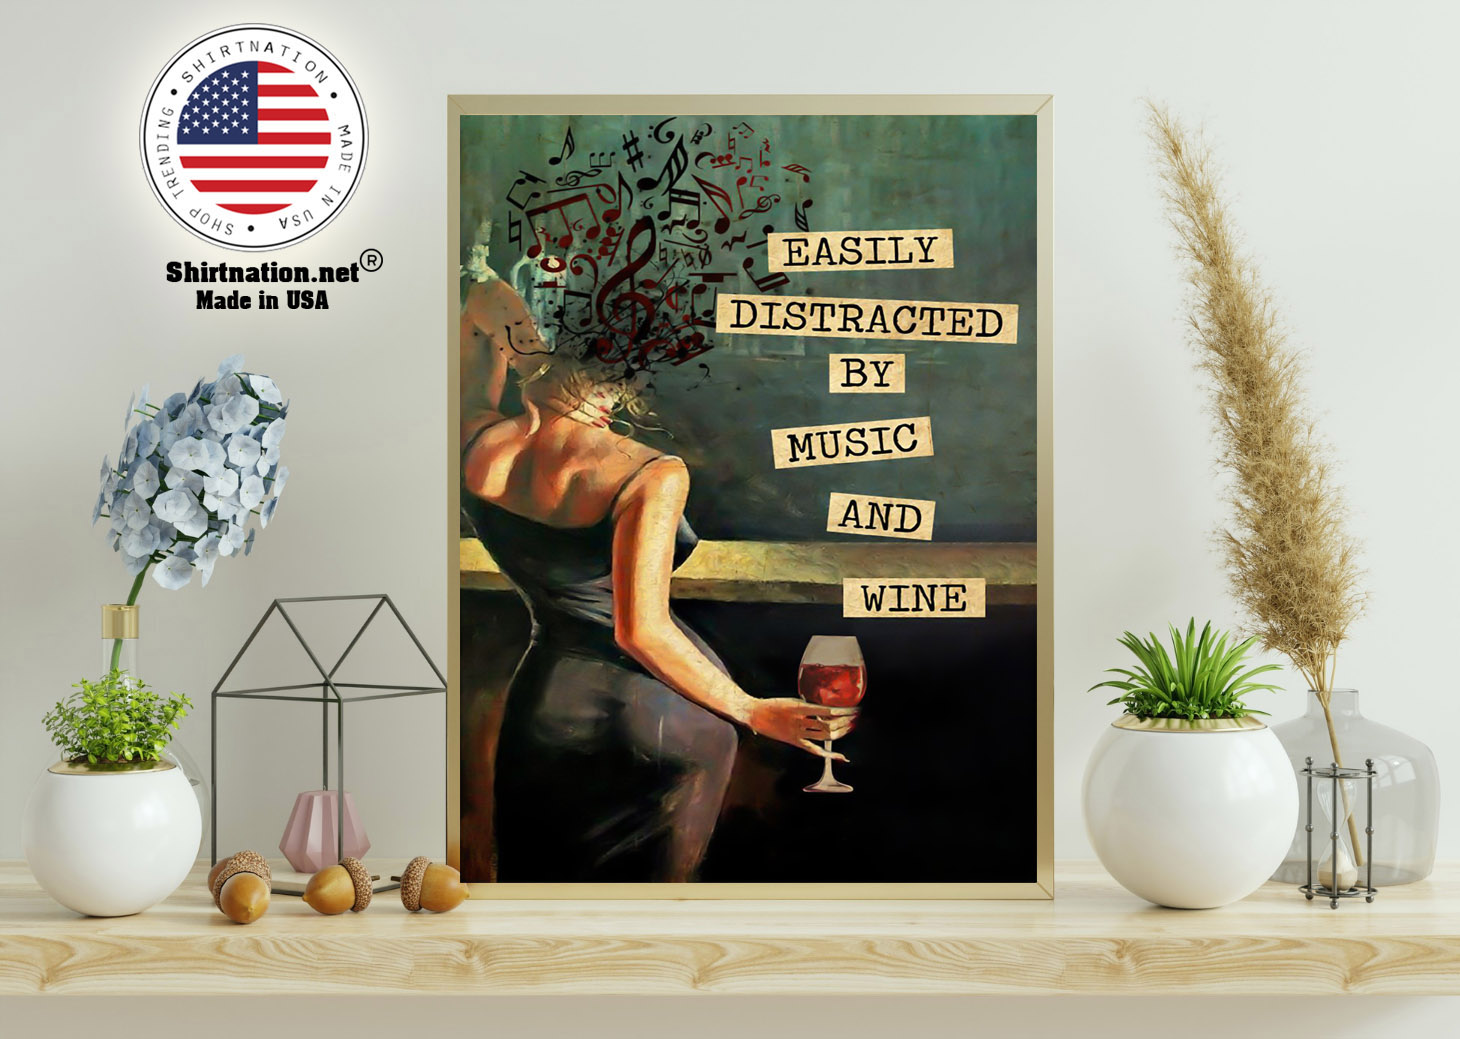 Vintage easily distracted by music and wine poster 11